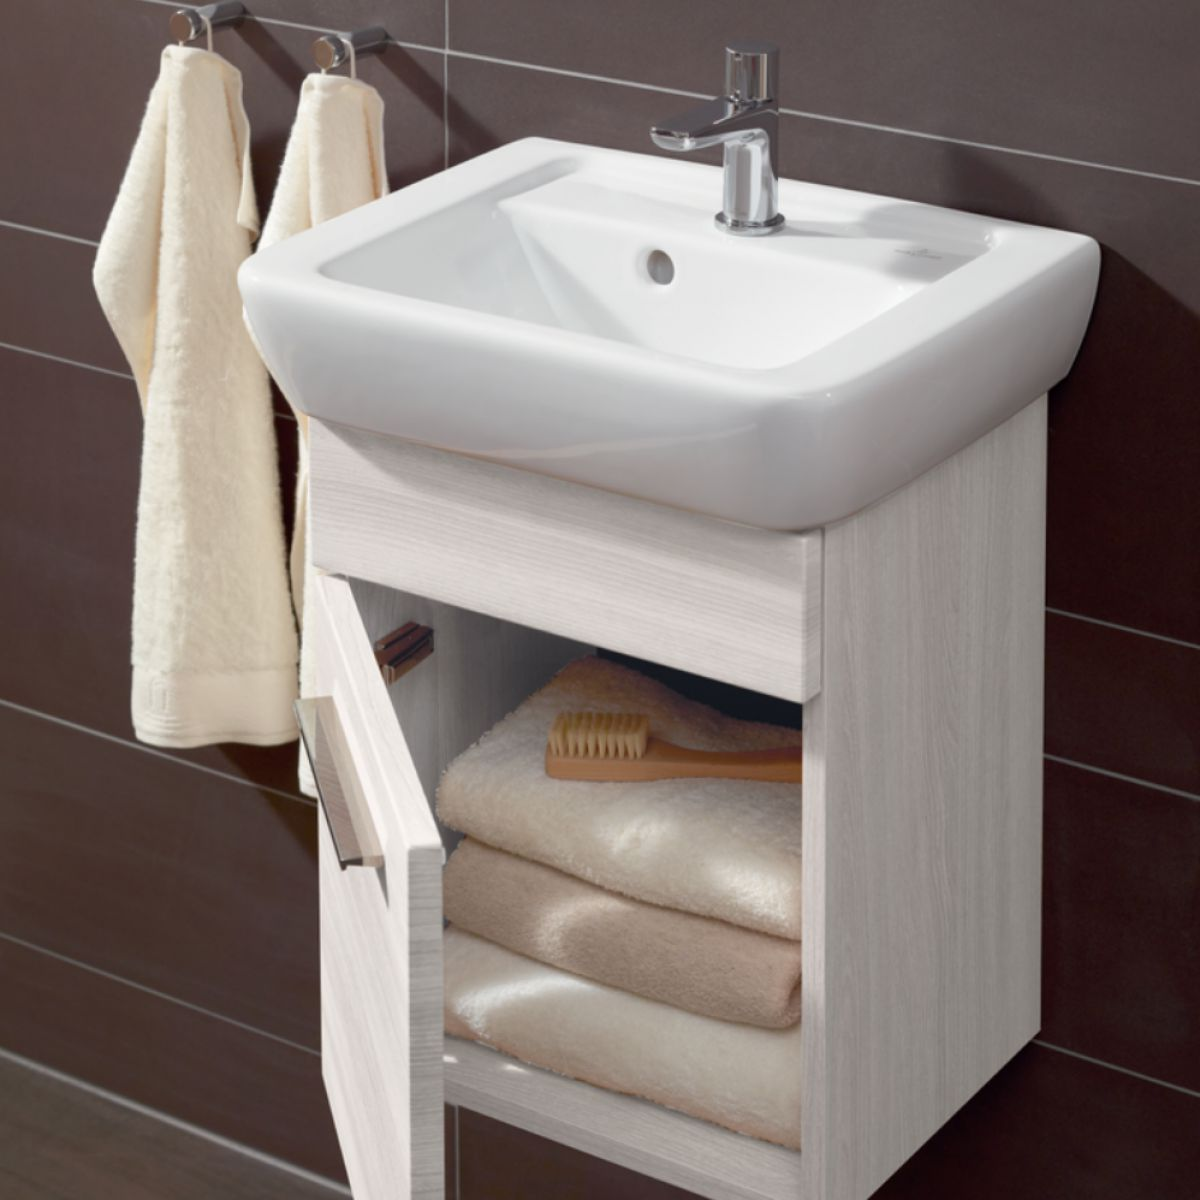 villeroy boch soho 2 cloakroom vanity unit uk bathrooms rh ukbathrooms com Bathroom Vanity with Basin Units Miami Bathroom Vanity